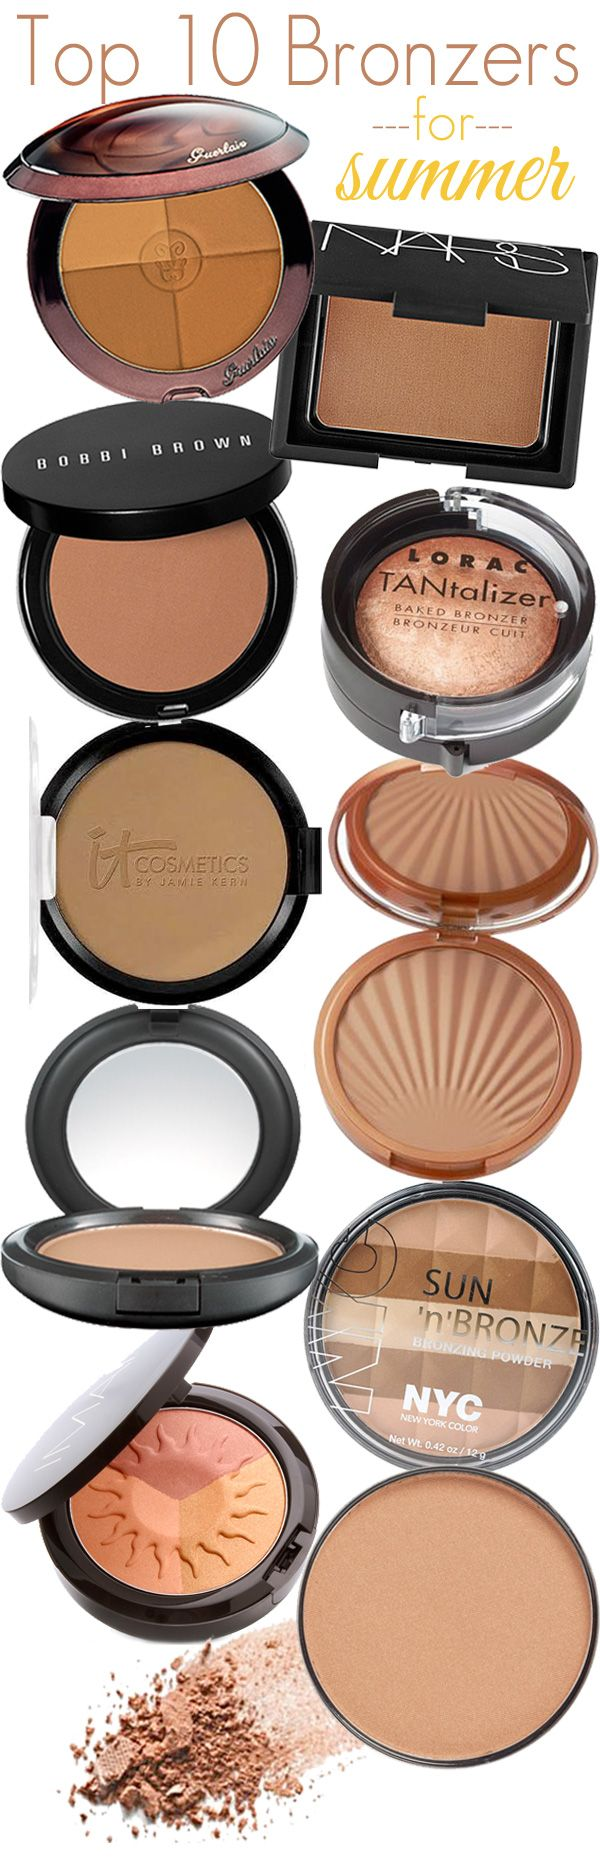 Top 10 Bronzers. - Home - Beauty Blog, Makeup Reviews, Beauty Tips | Beautiful Makeup Search